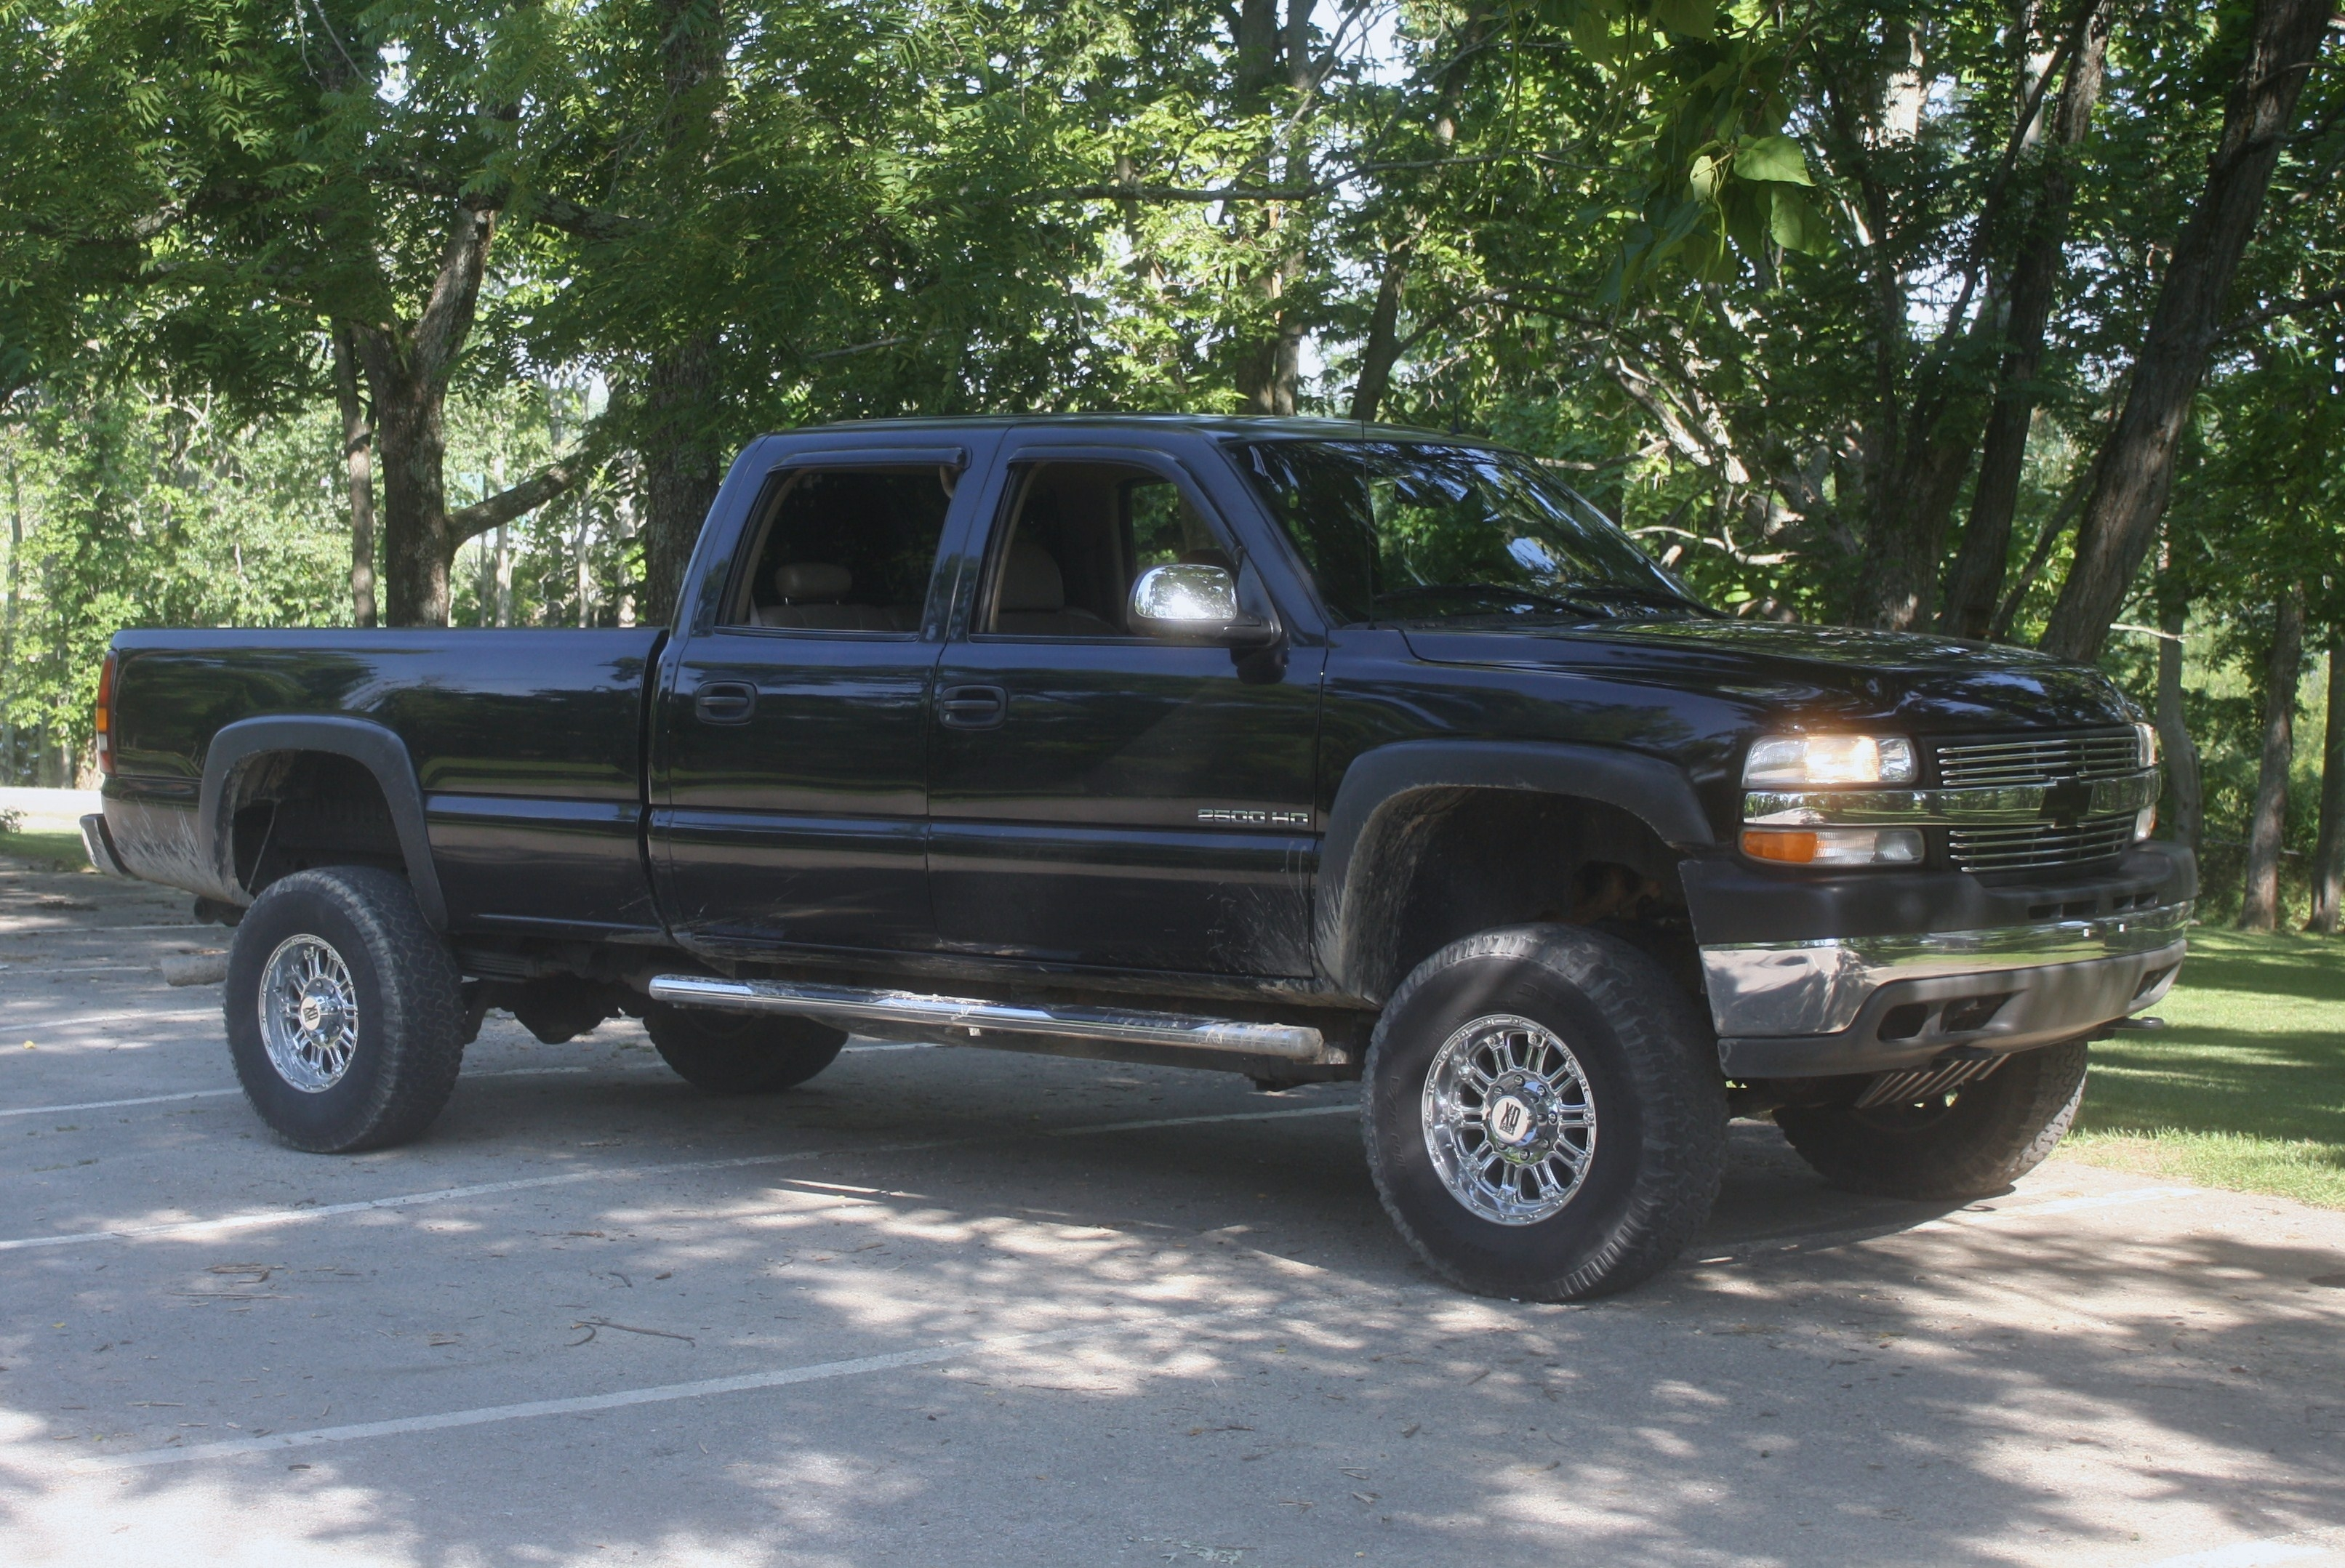 wisoserious 2002 chevrolet silverado 2500 hd crew cab specs photos modification info at cardomain. Black Bedroom Furniture Sets. Home Design Ideas